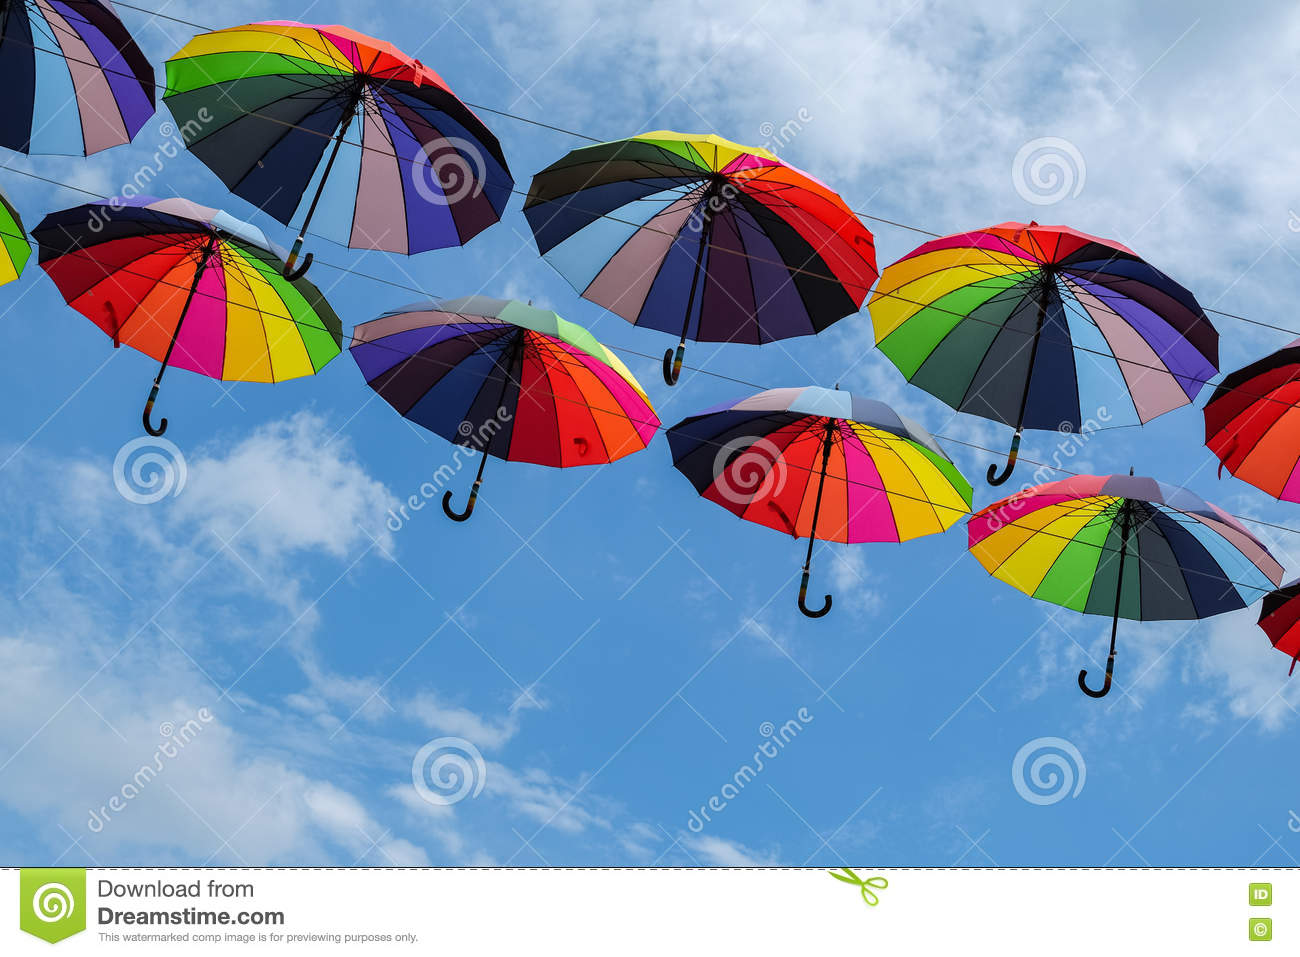 1bb1e4e2d Bright colorful rainbow umbrellas floating against blue sky with copy space